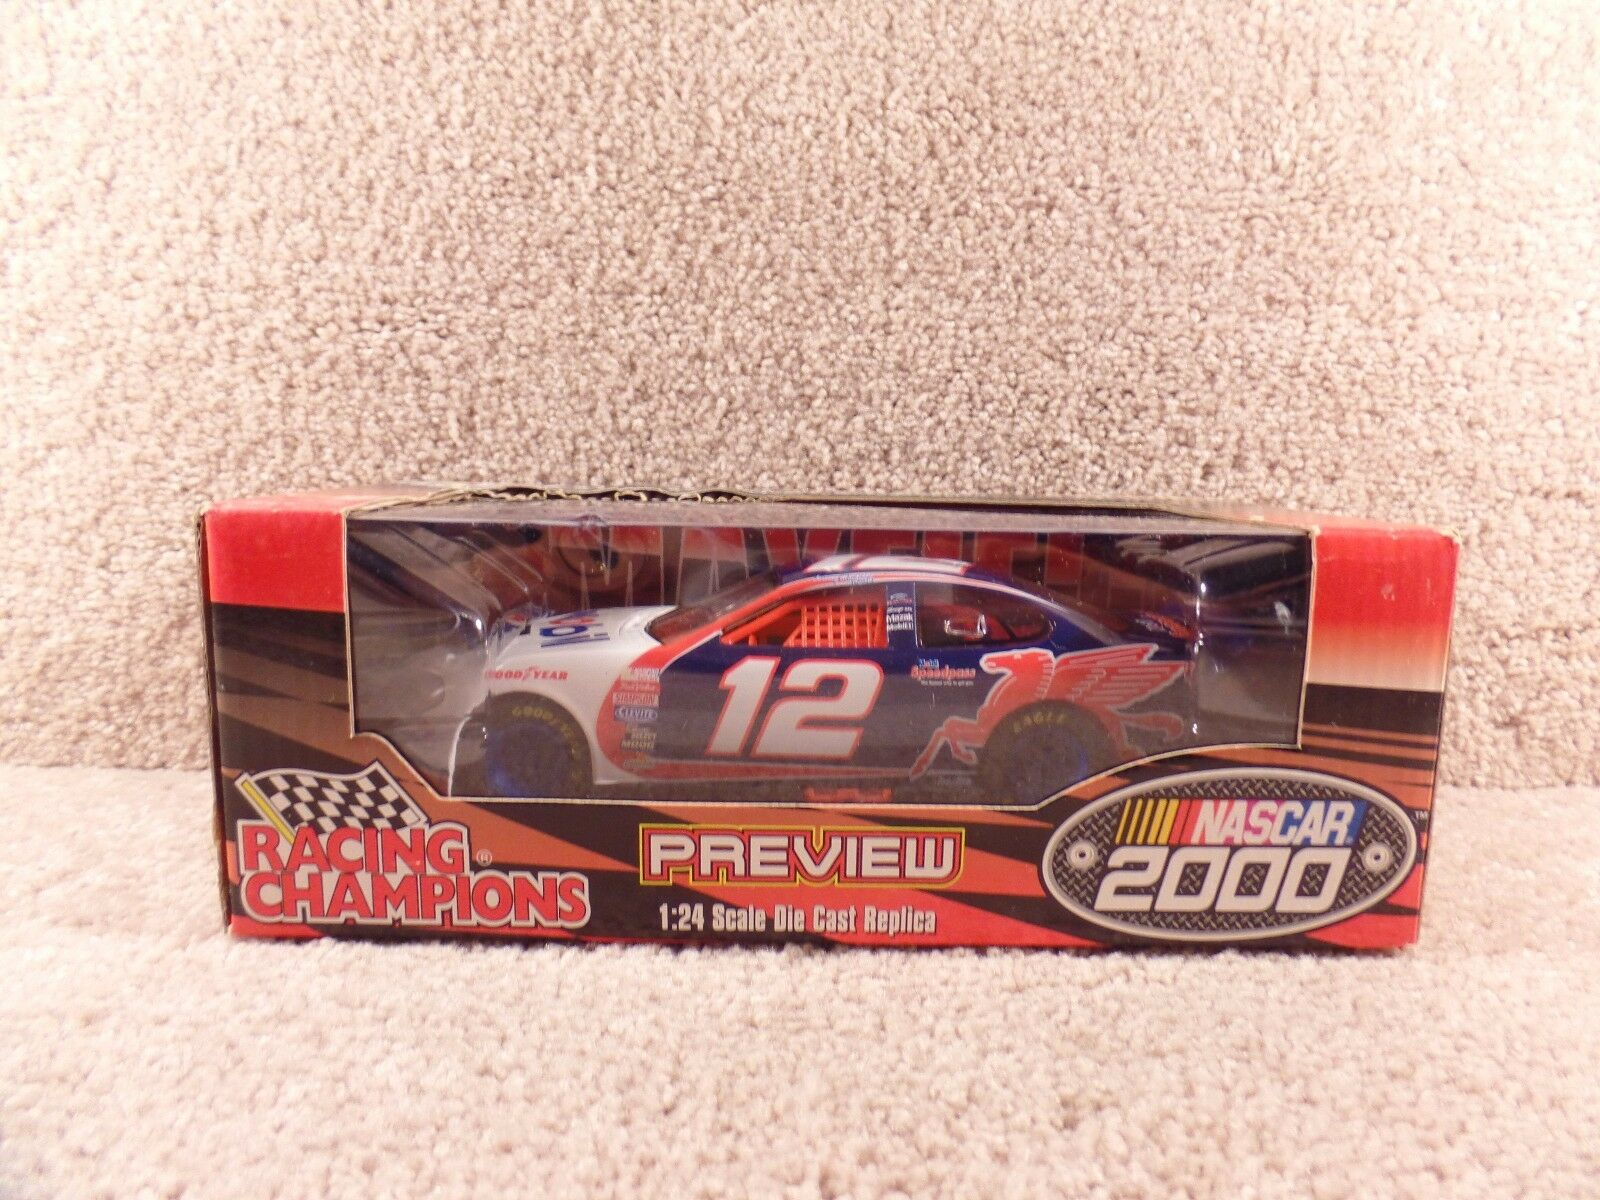 New 2000 Racing Champions 1 24 NASCAR Jeremy Mayfield Mobil Ford Taurus